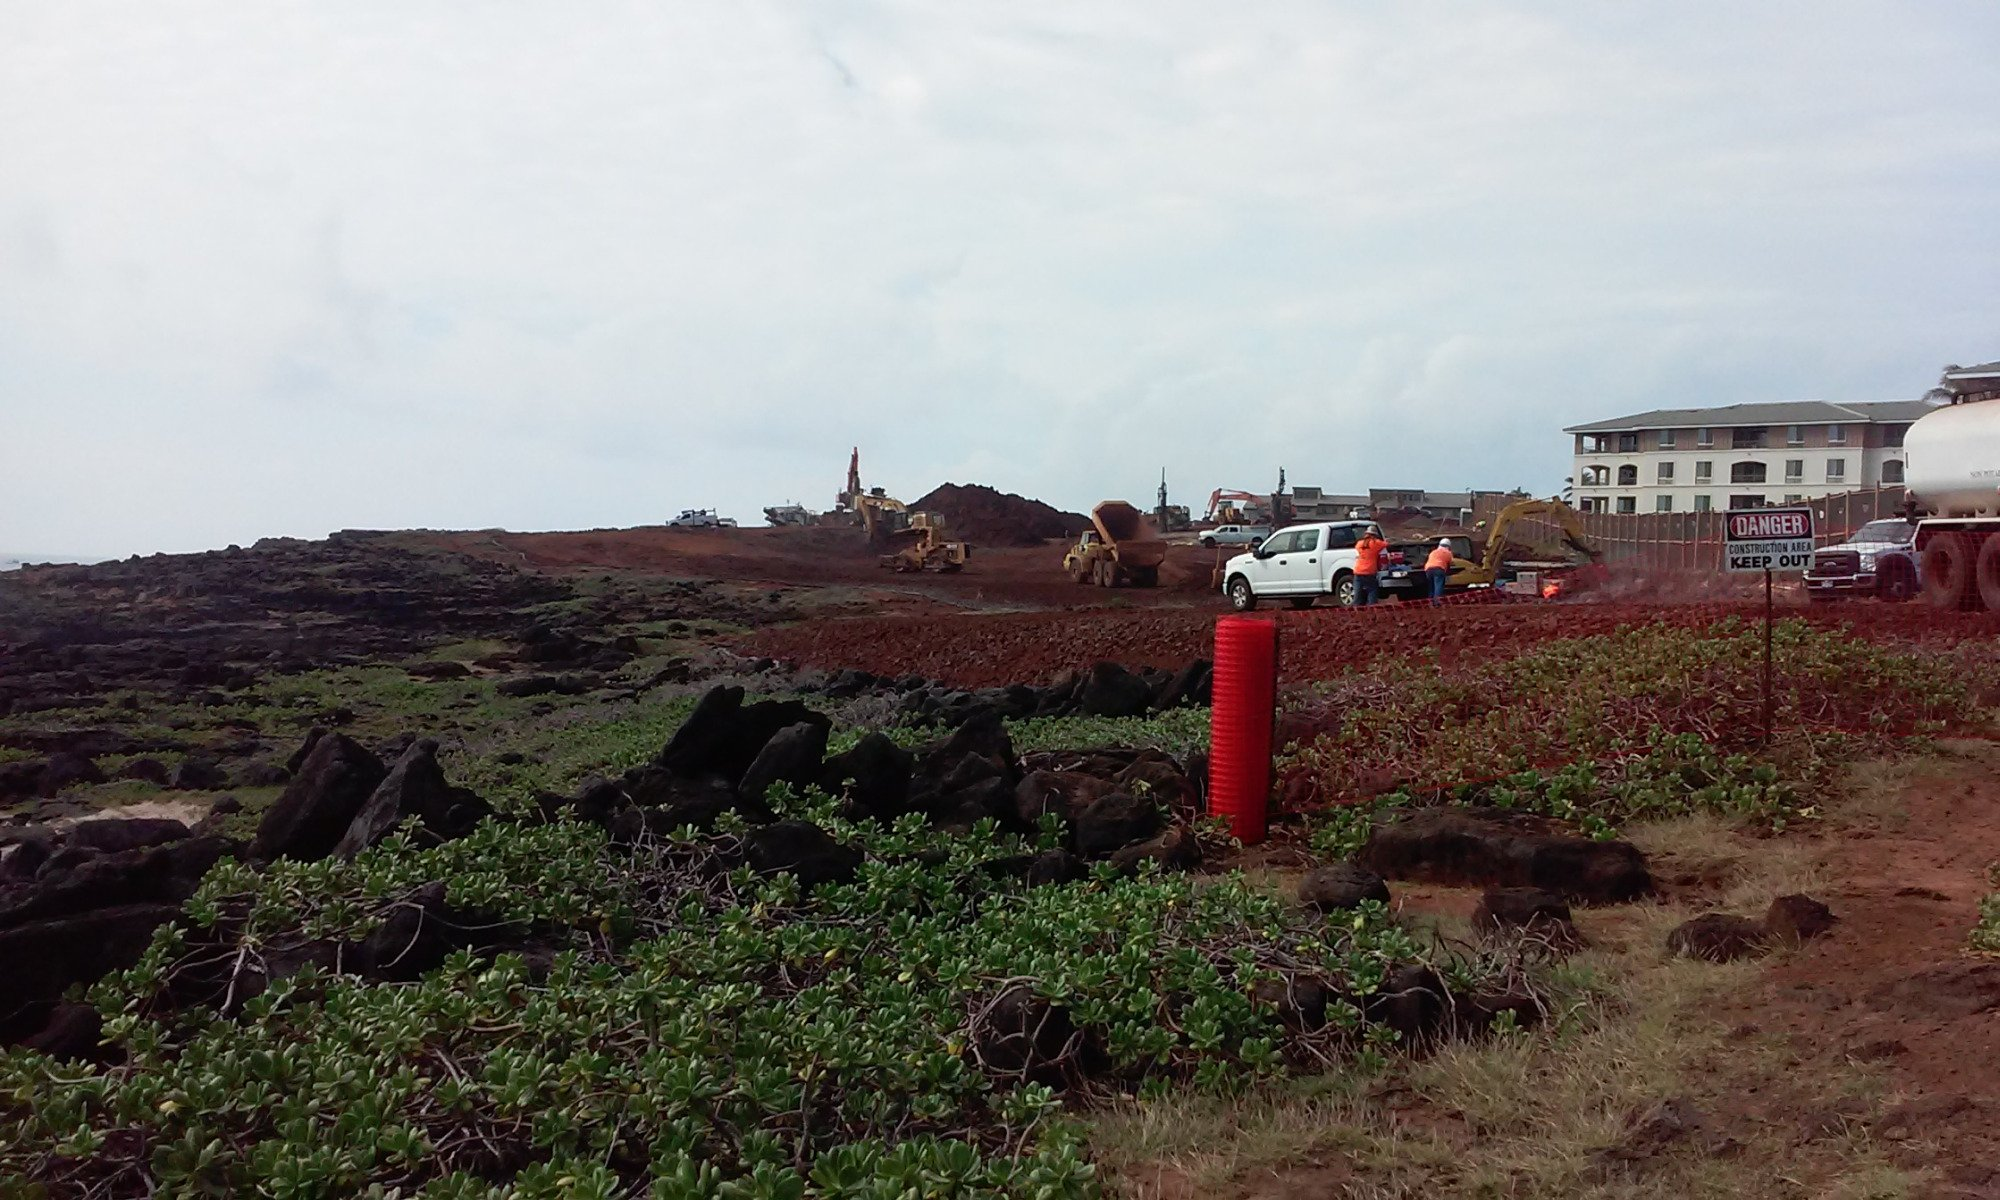 Construction at Makahuena Point